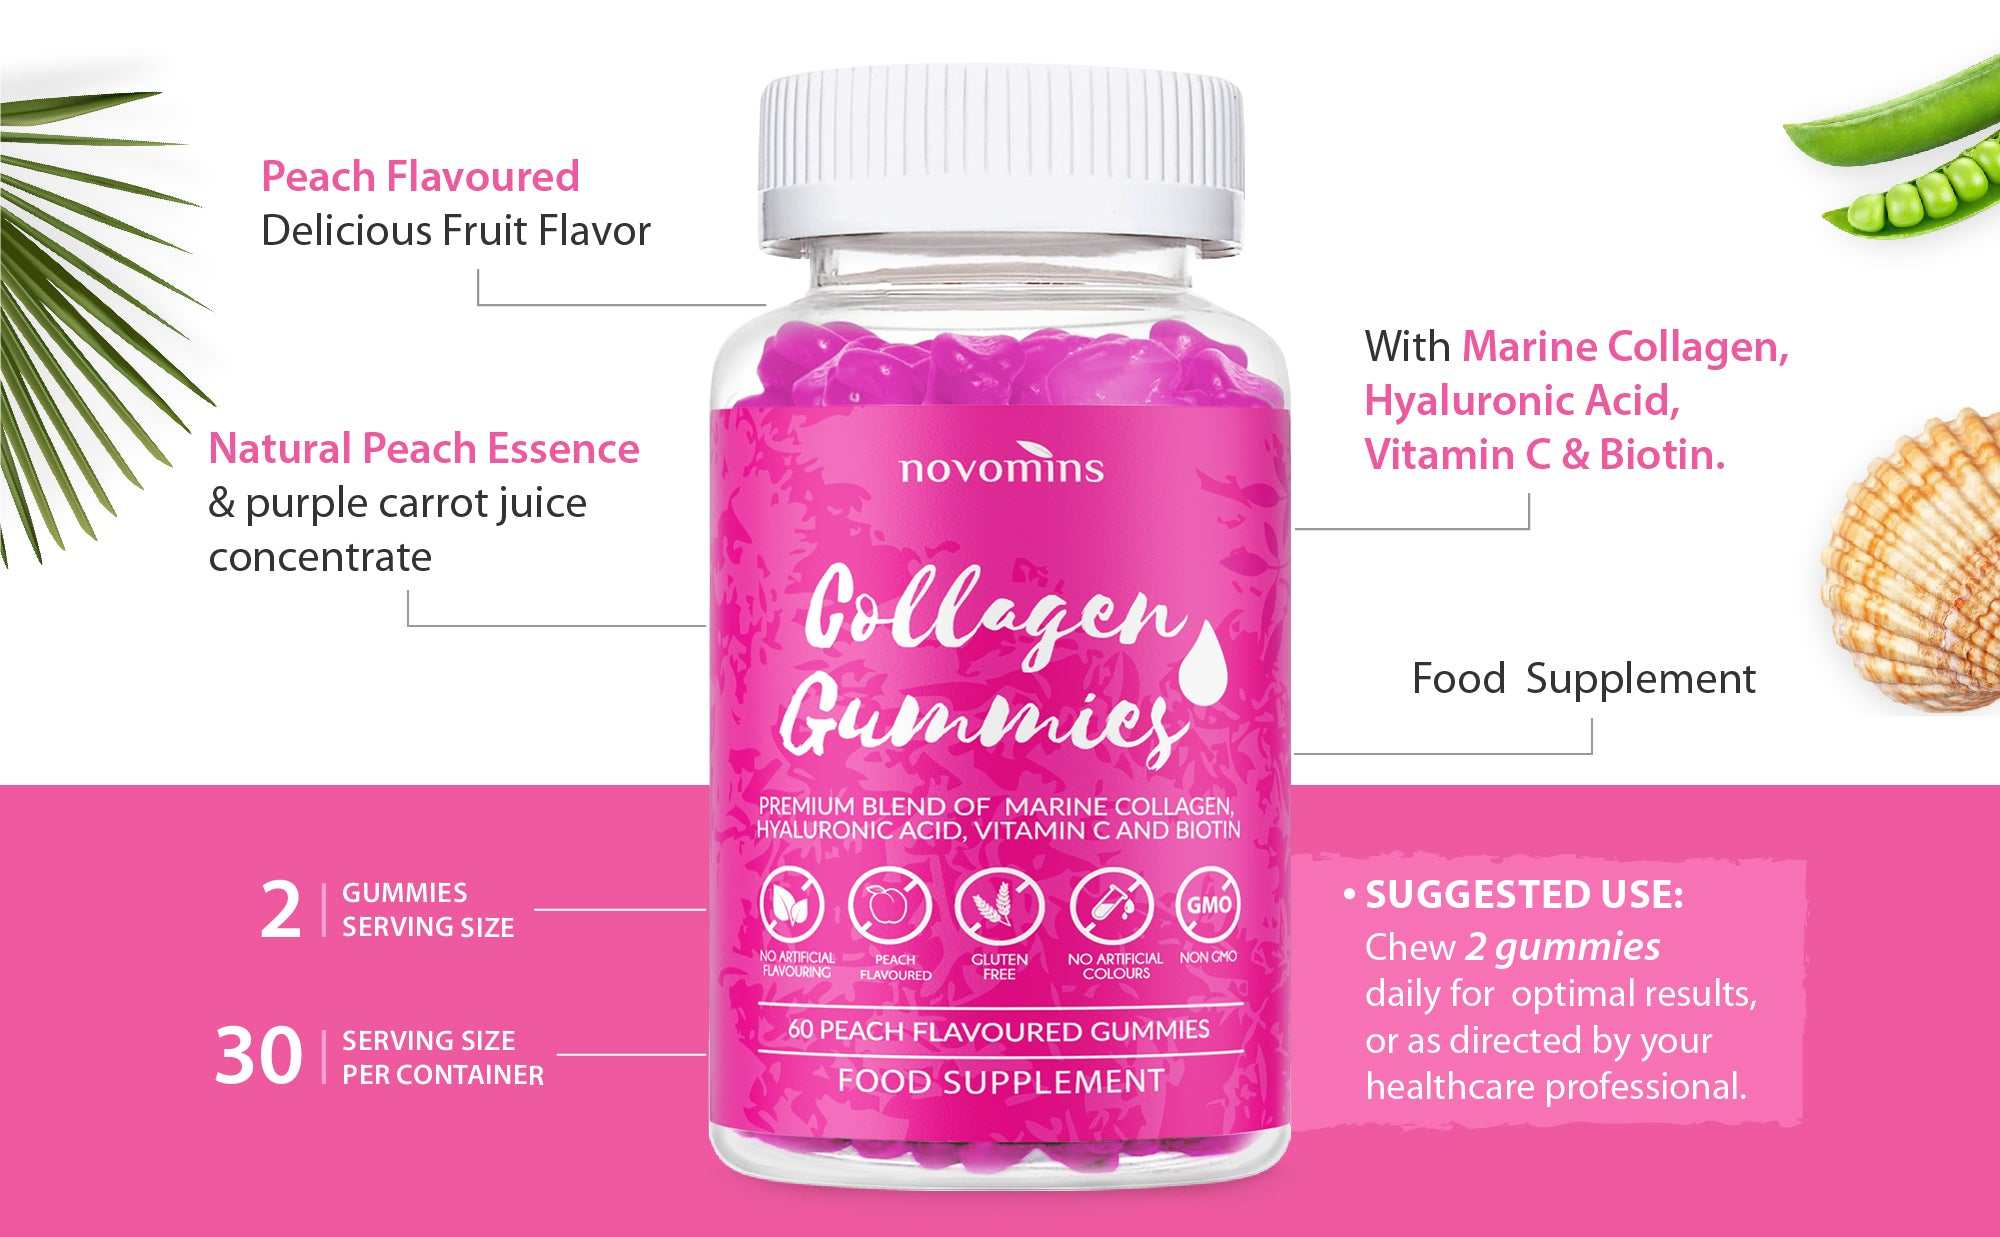 marine collagen, gummy vitamins, collagen tablets, supplements for women, collagen gummies, marine collagen complex, collagen supplements, marine collagen capsules, supplements for women